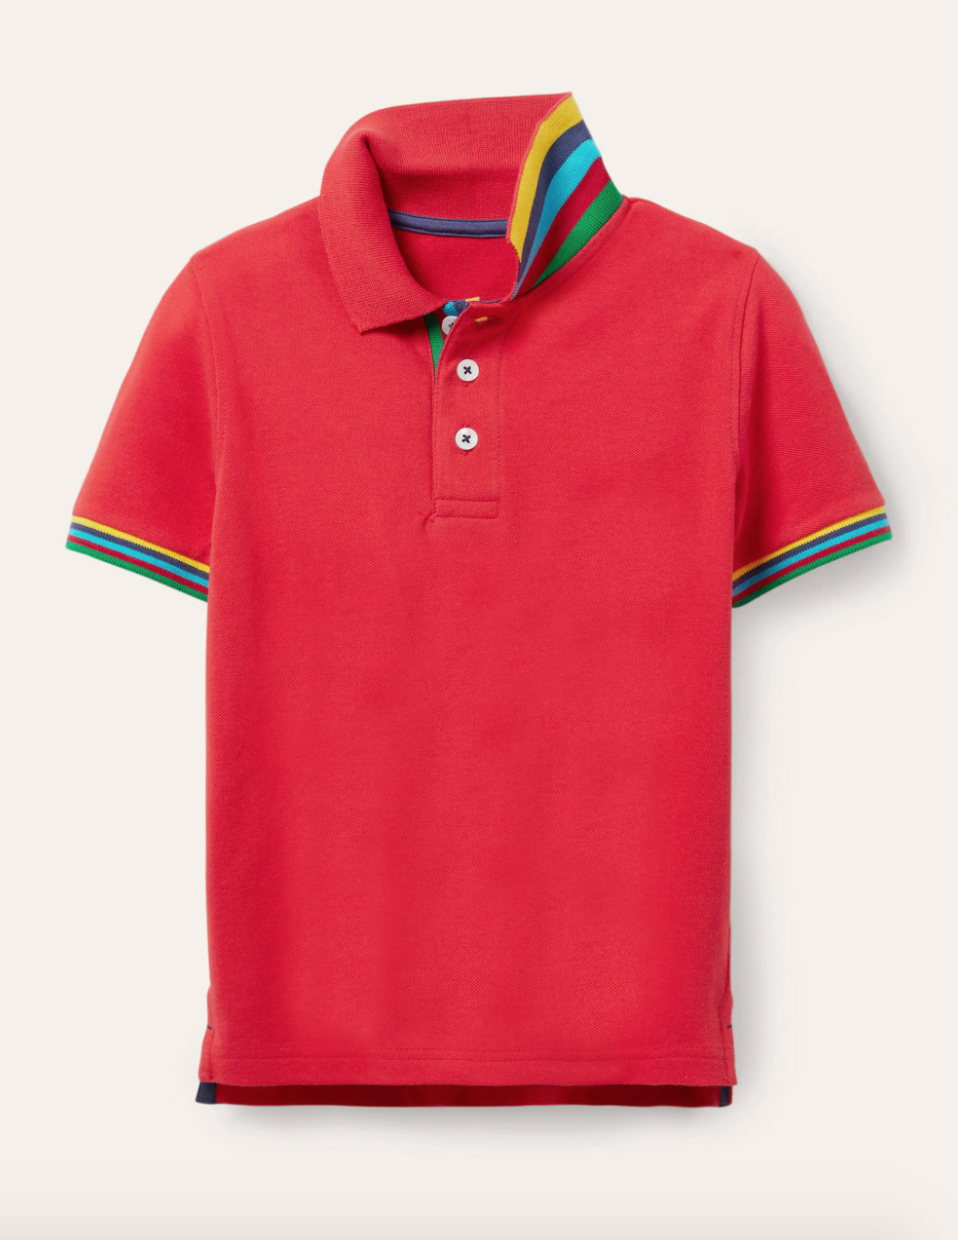 Red pique edge polo shirt with rainbow detailing